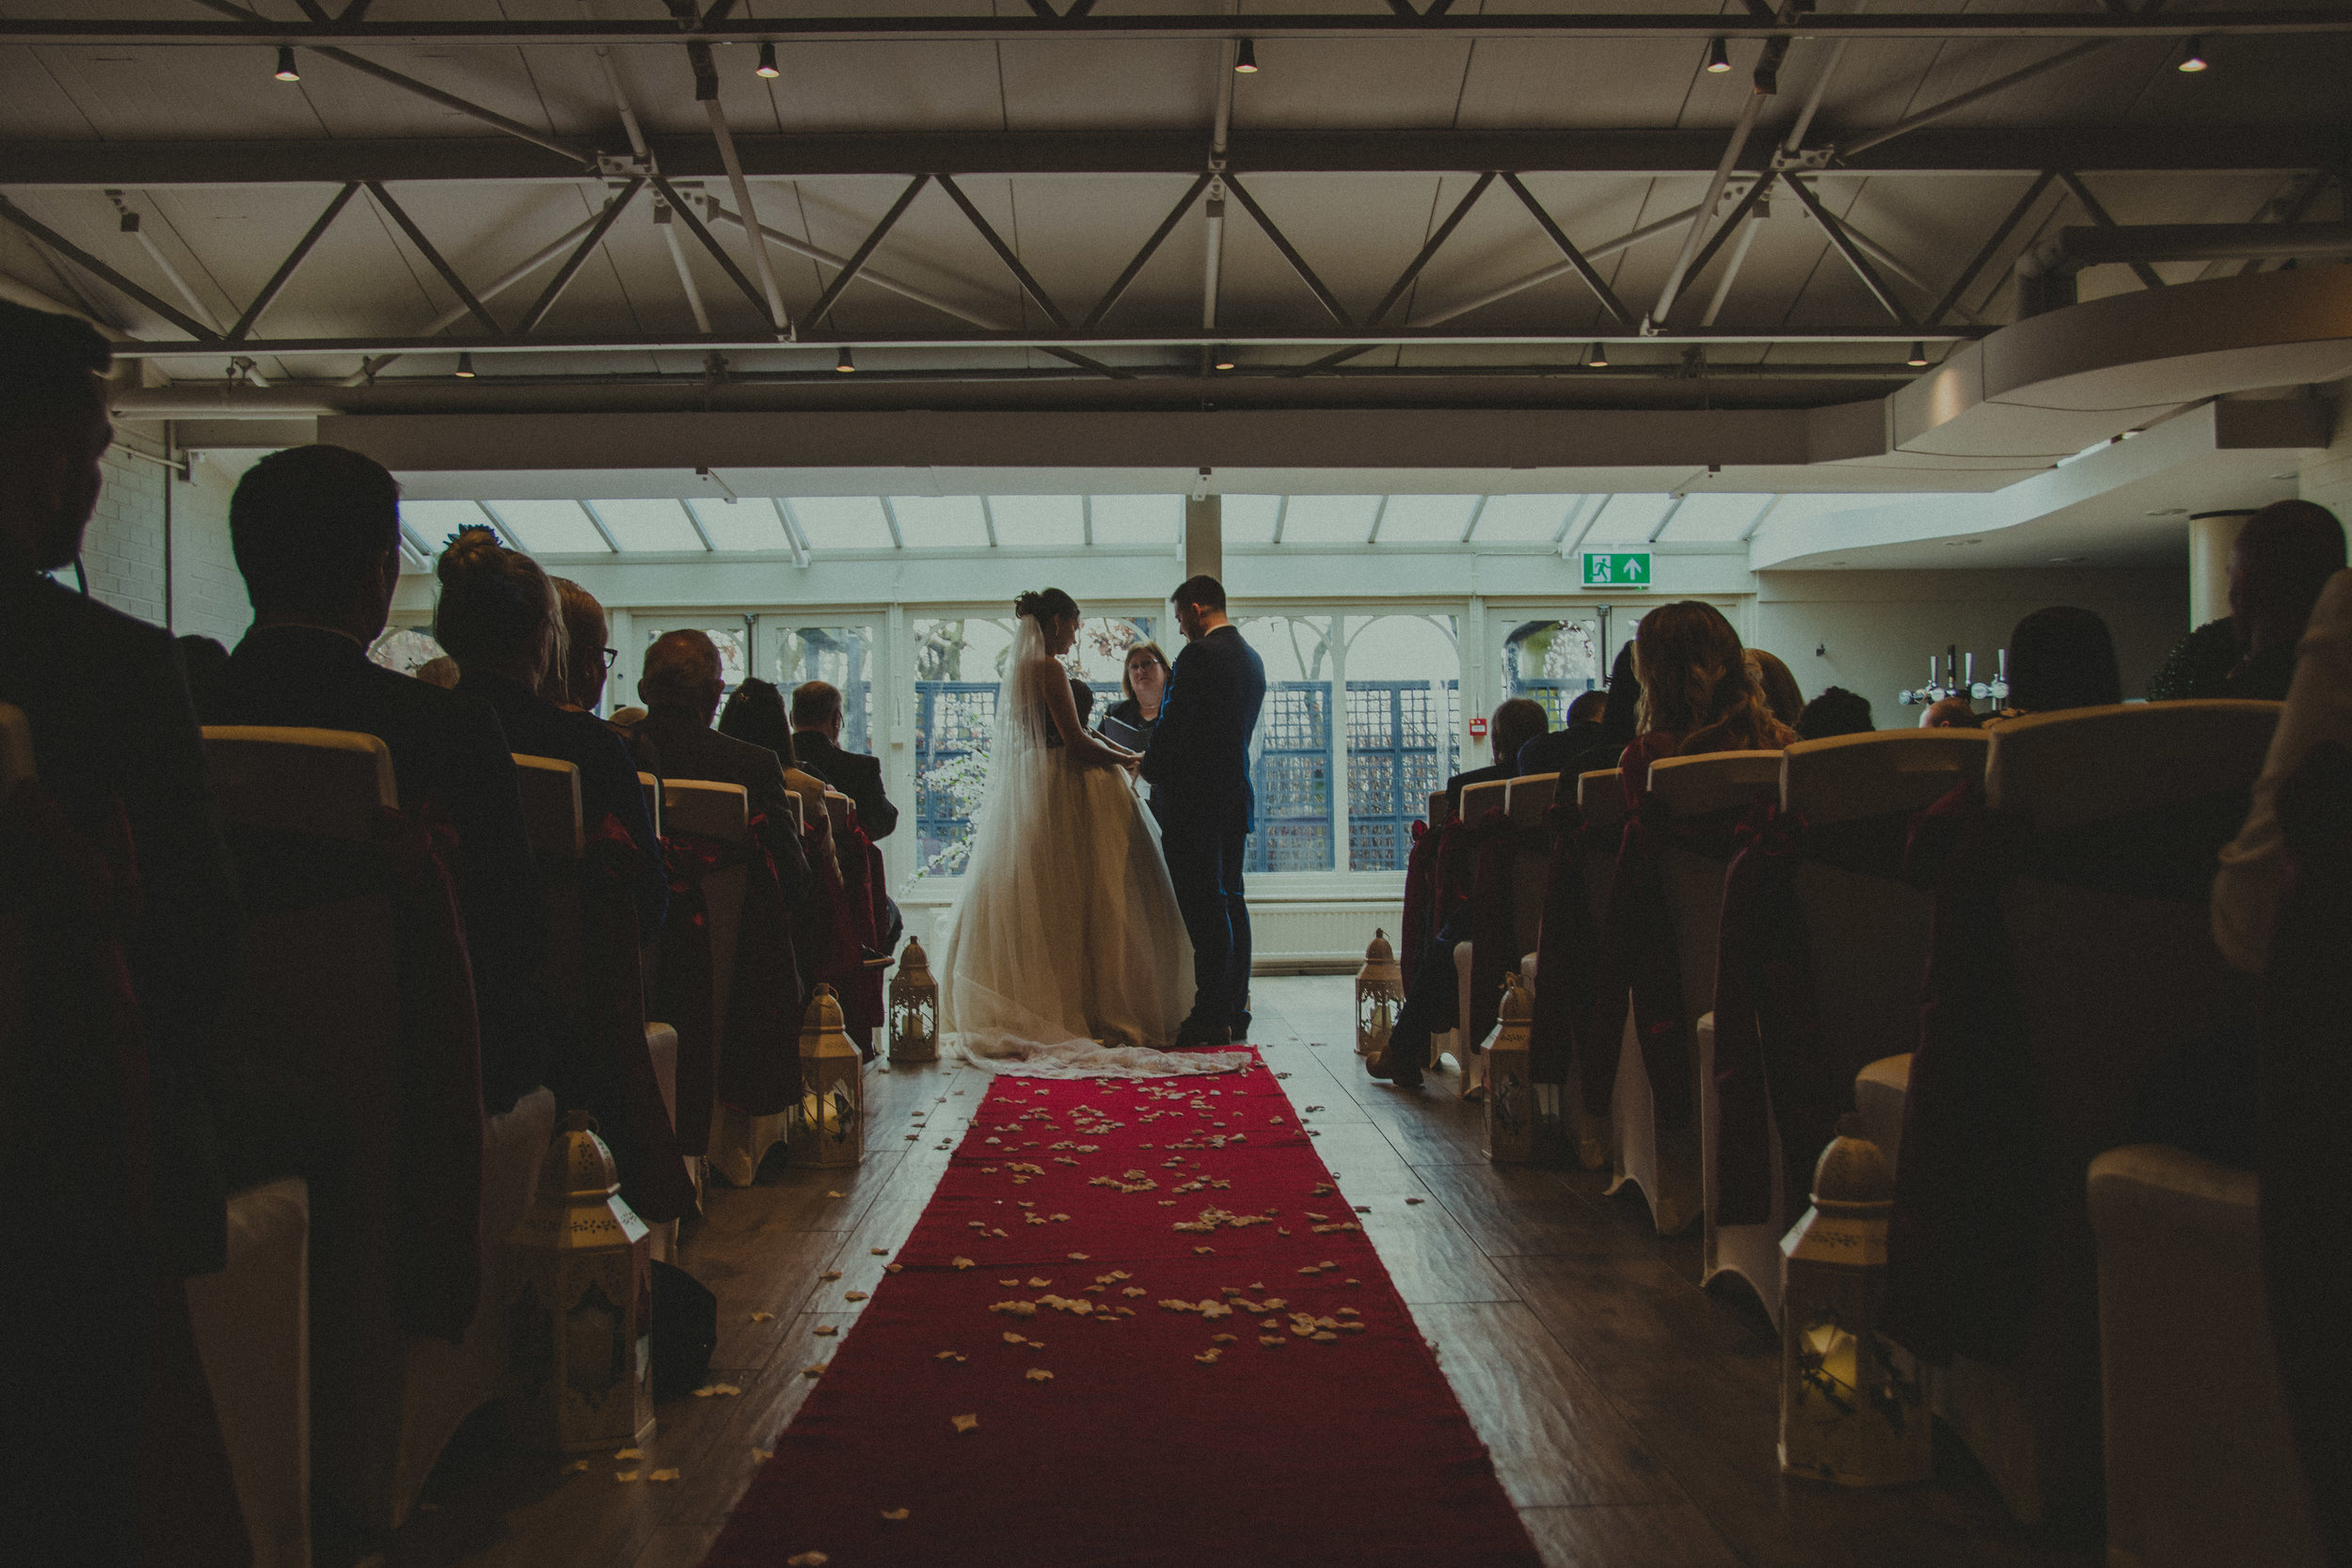 Cheshire wedding photographer knutford wedding photographer wedding photographer northwest wedding photographer newcastle wedding photographer award winning wedding photographer (1 of 1).jpg